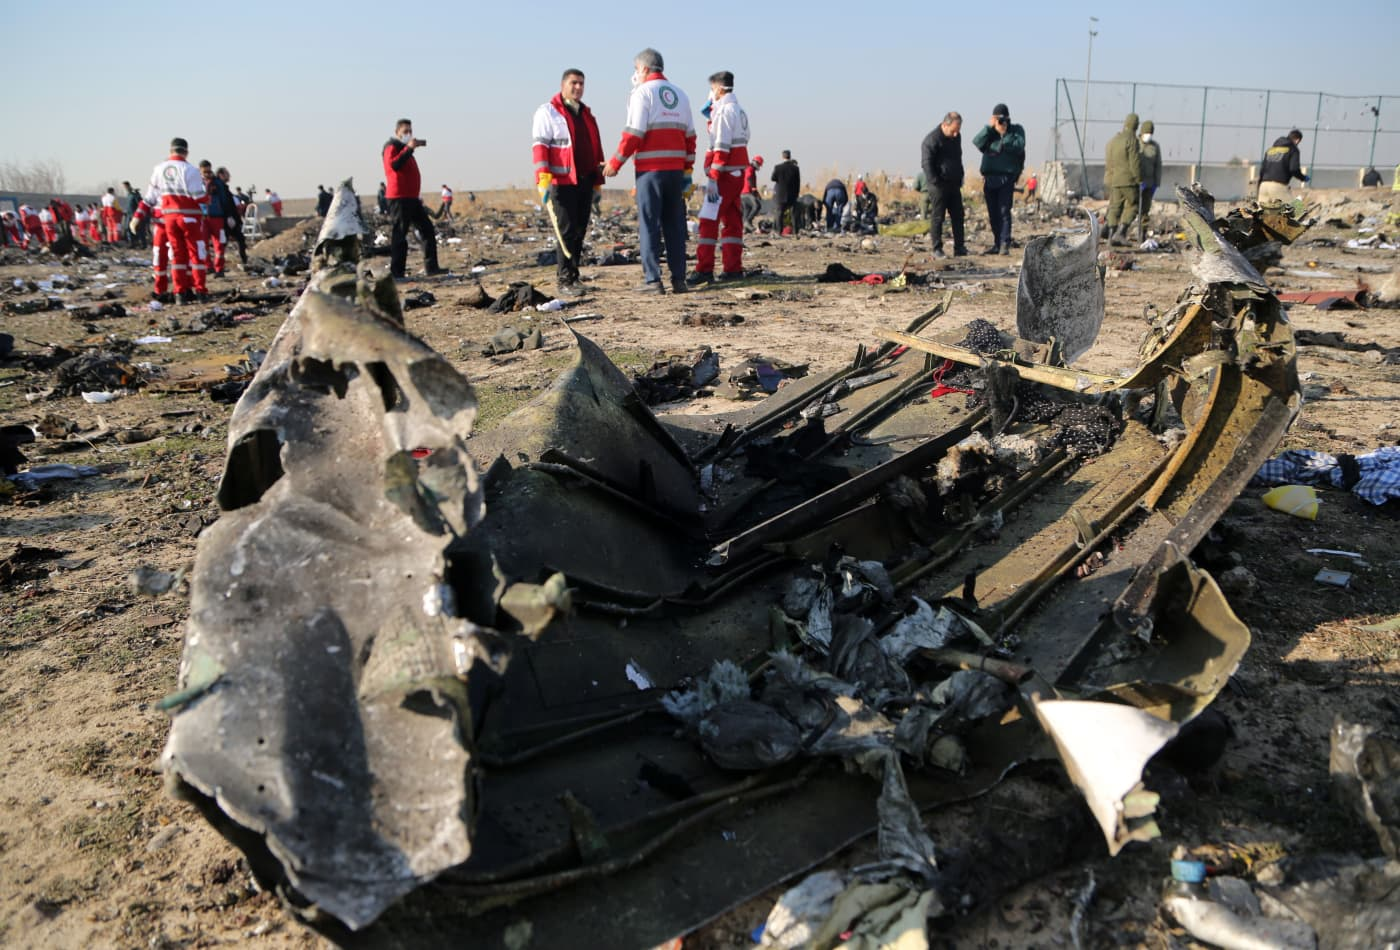 Boeing 737 plane bound for Kyiv crashes in Iran, killing all 176 people on board